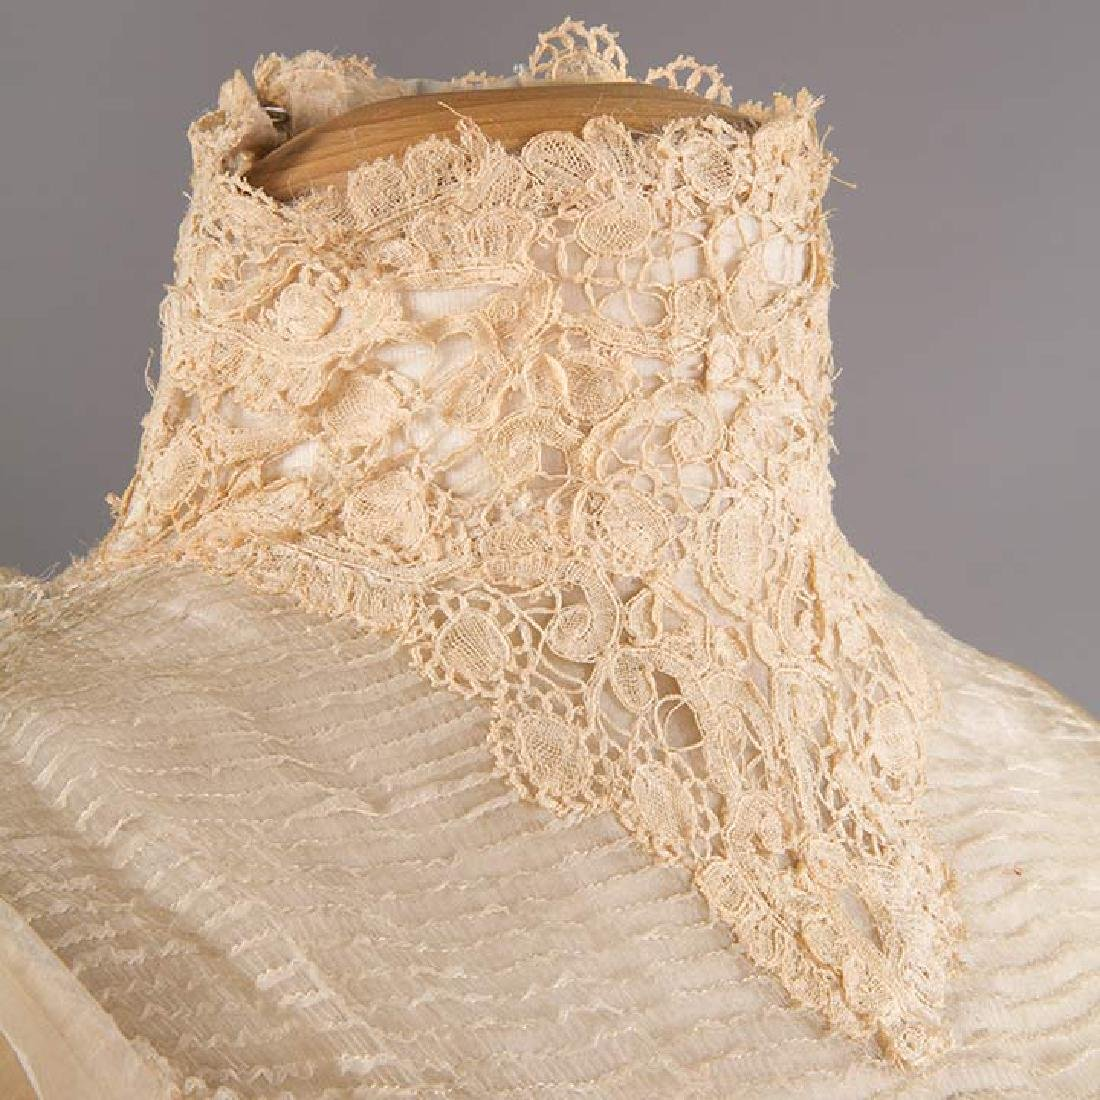 SILK & BRUSSELS LACE WEDDING GOWN, NYC, 1902 - 8